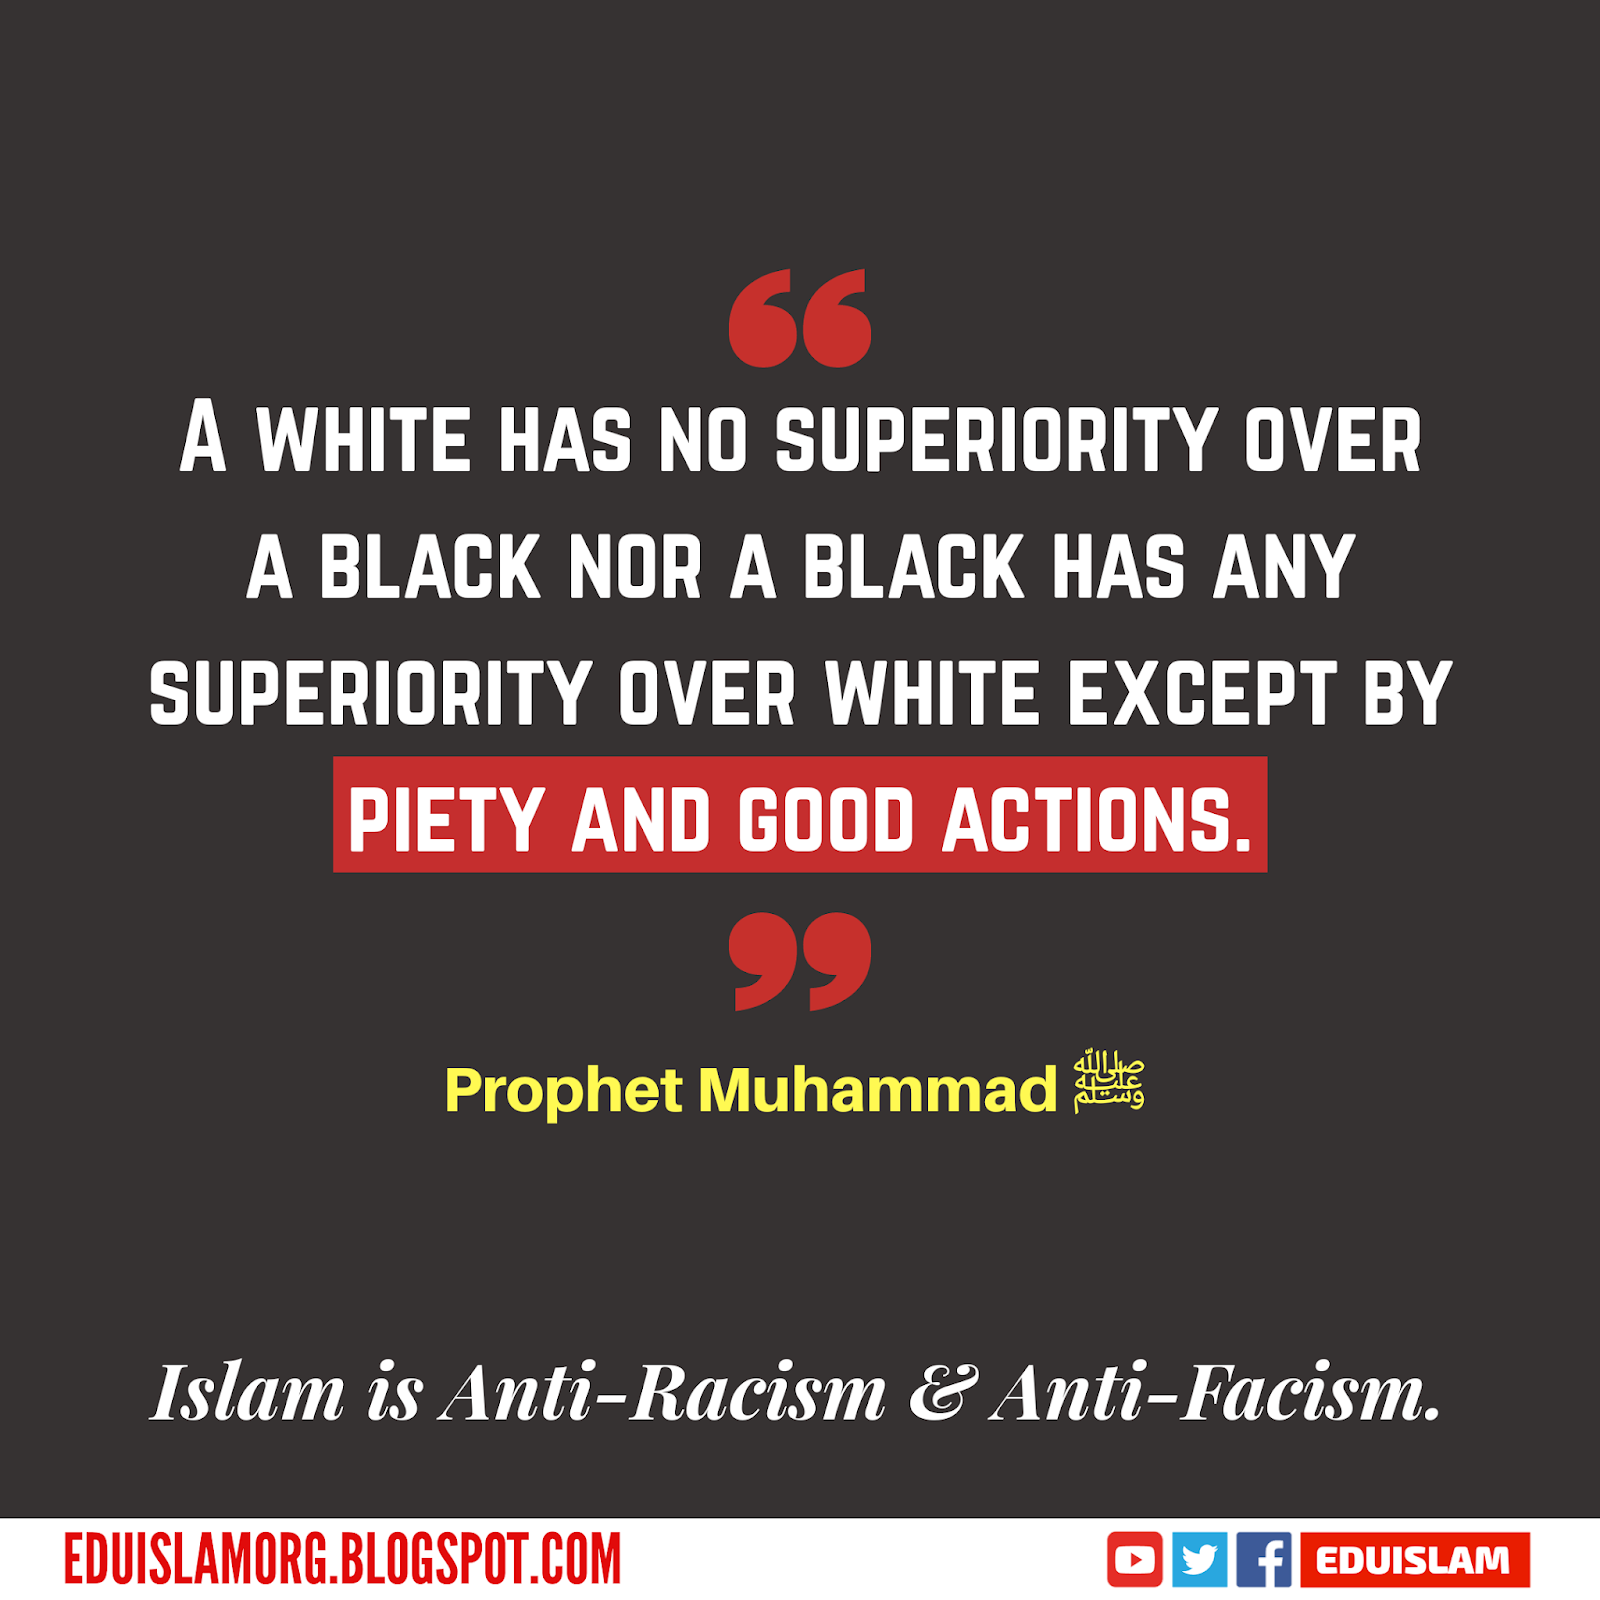 A white has no superiority over a black